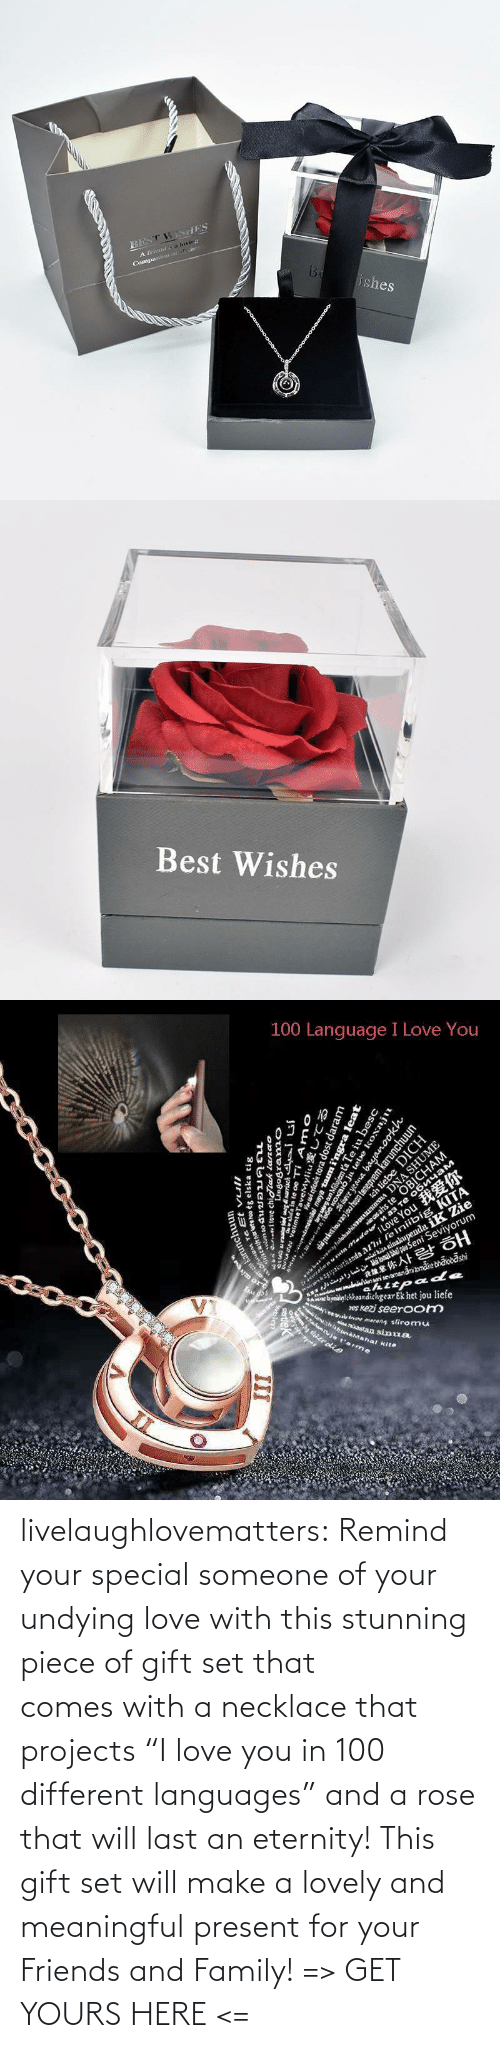 "And I Love You: livelaughlovematters:  Remind your special someone of your undying love with this stunning piece of gift set that comes with a necklace that projects ""I love you in 100 different languages"" and a rose that will last an eternity! This gift set will make a lovely and meaningful present for your Friends and Family! => GET YOURS HERE <="